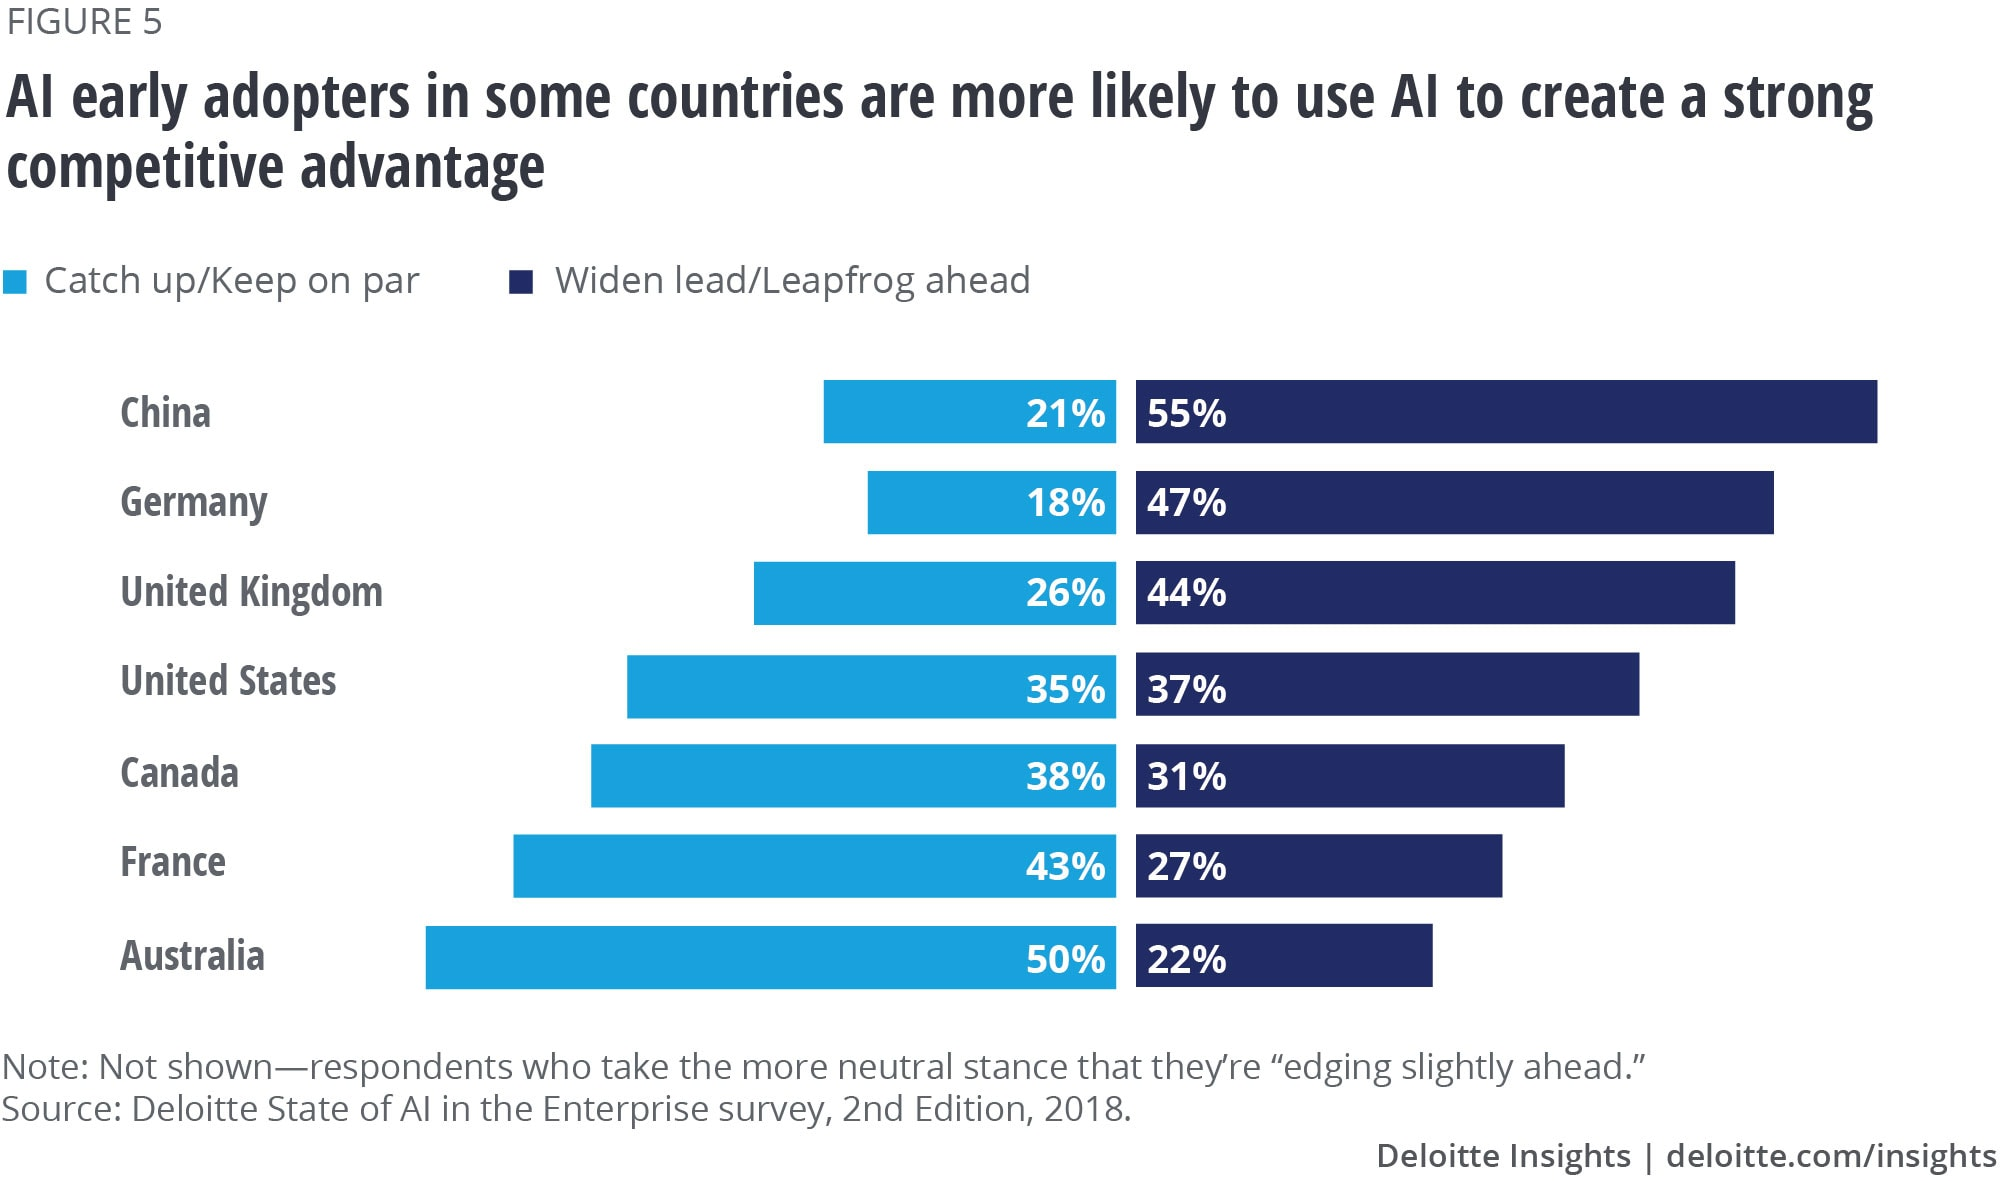 AI early adopters in some countries are more likely to use AI to create a strong competitive advantage